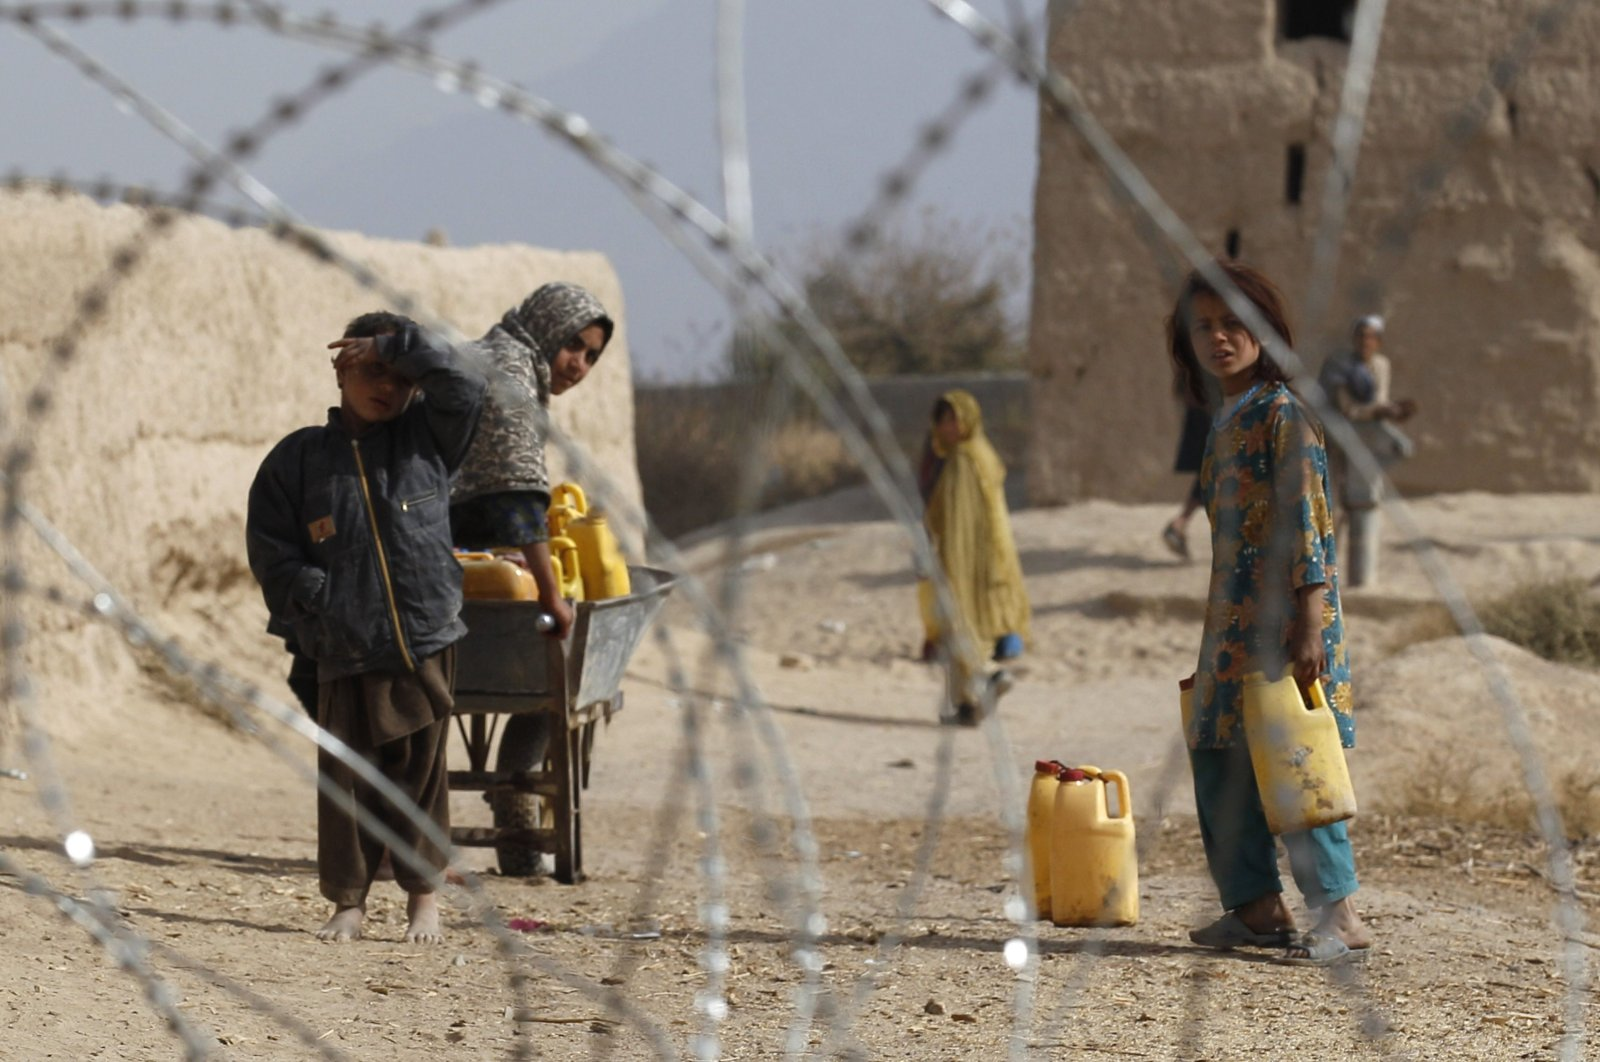 Afghan children look from behind a razor wire at an outpost in Zhari district in Kandahar Province, Nov. 20, 2010. (REUTERS Photo)